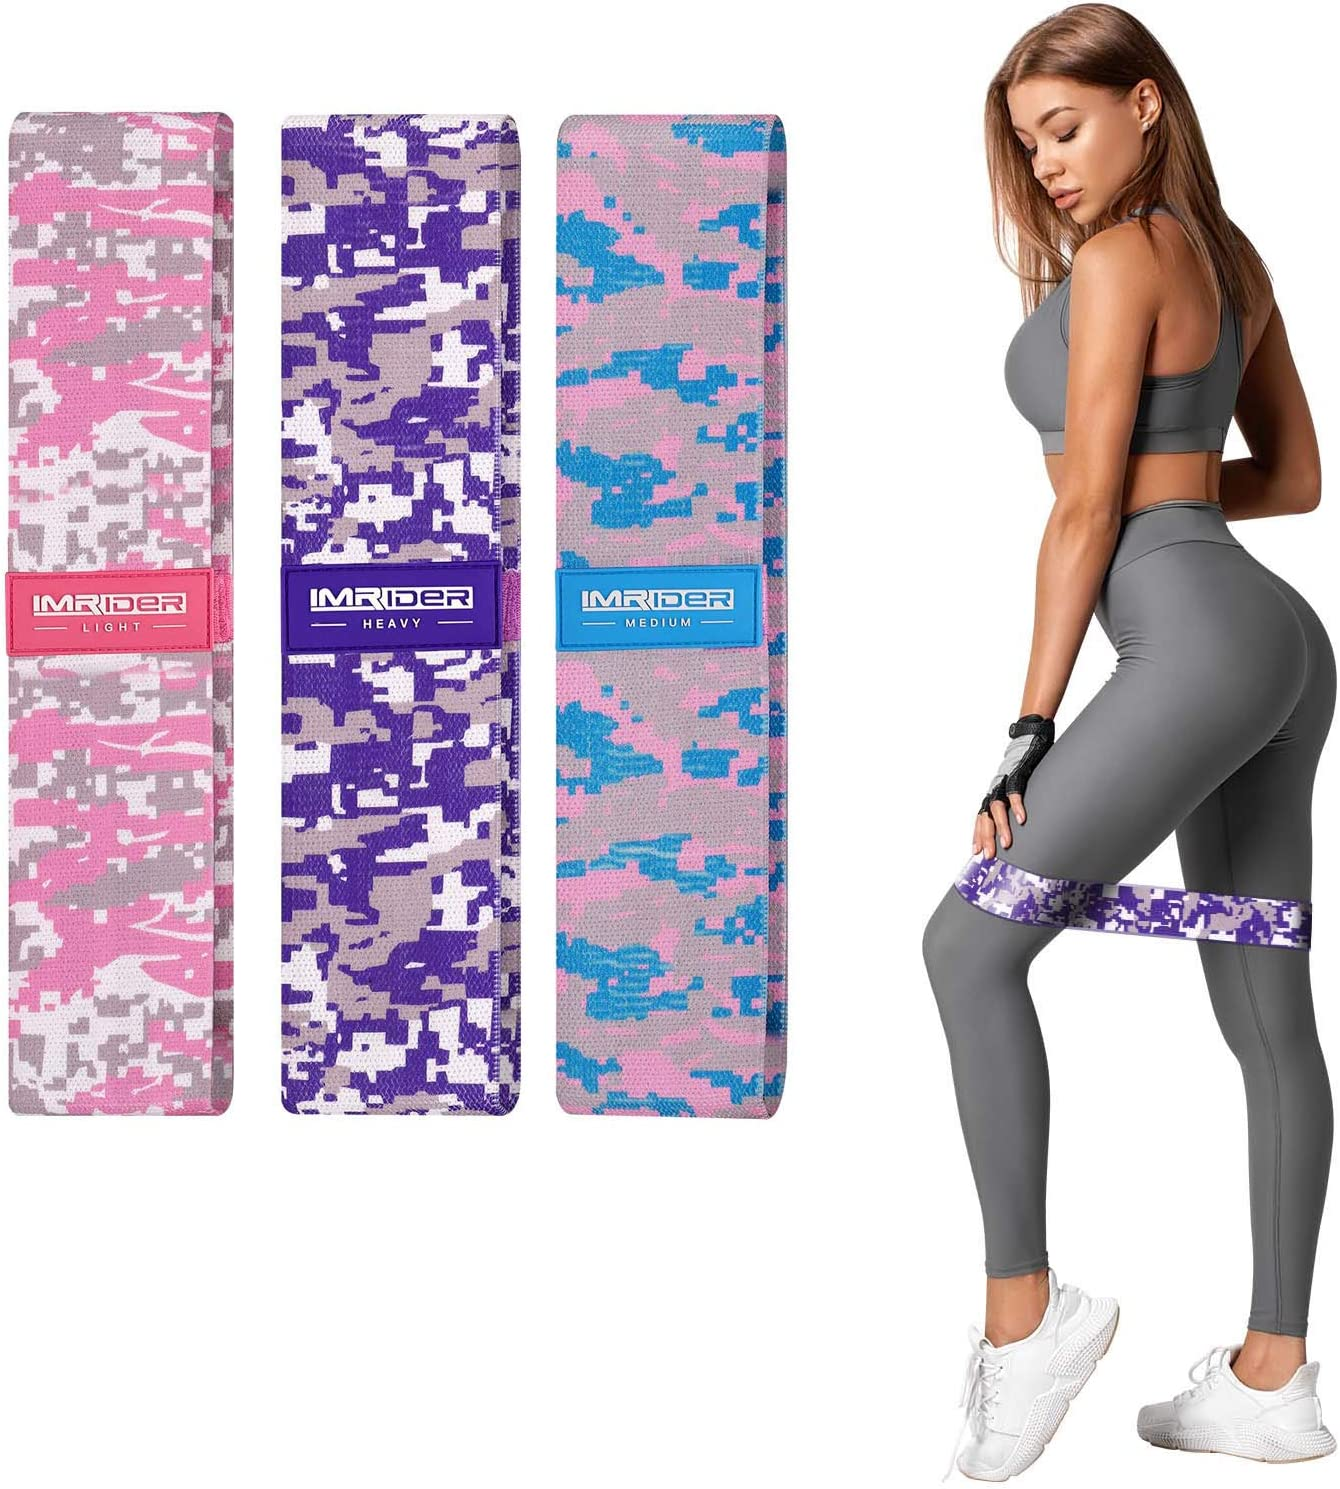 IMRIDER Resistance In a popularity Bands for Women Classic Exercise Fabric Loo Non-Slip